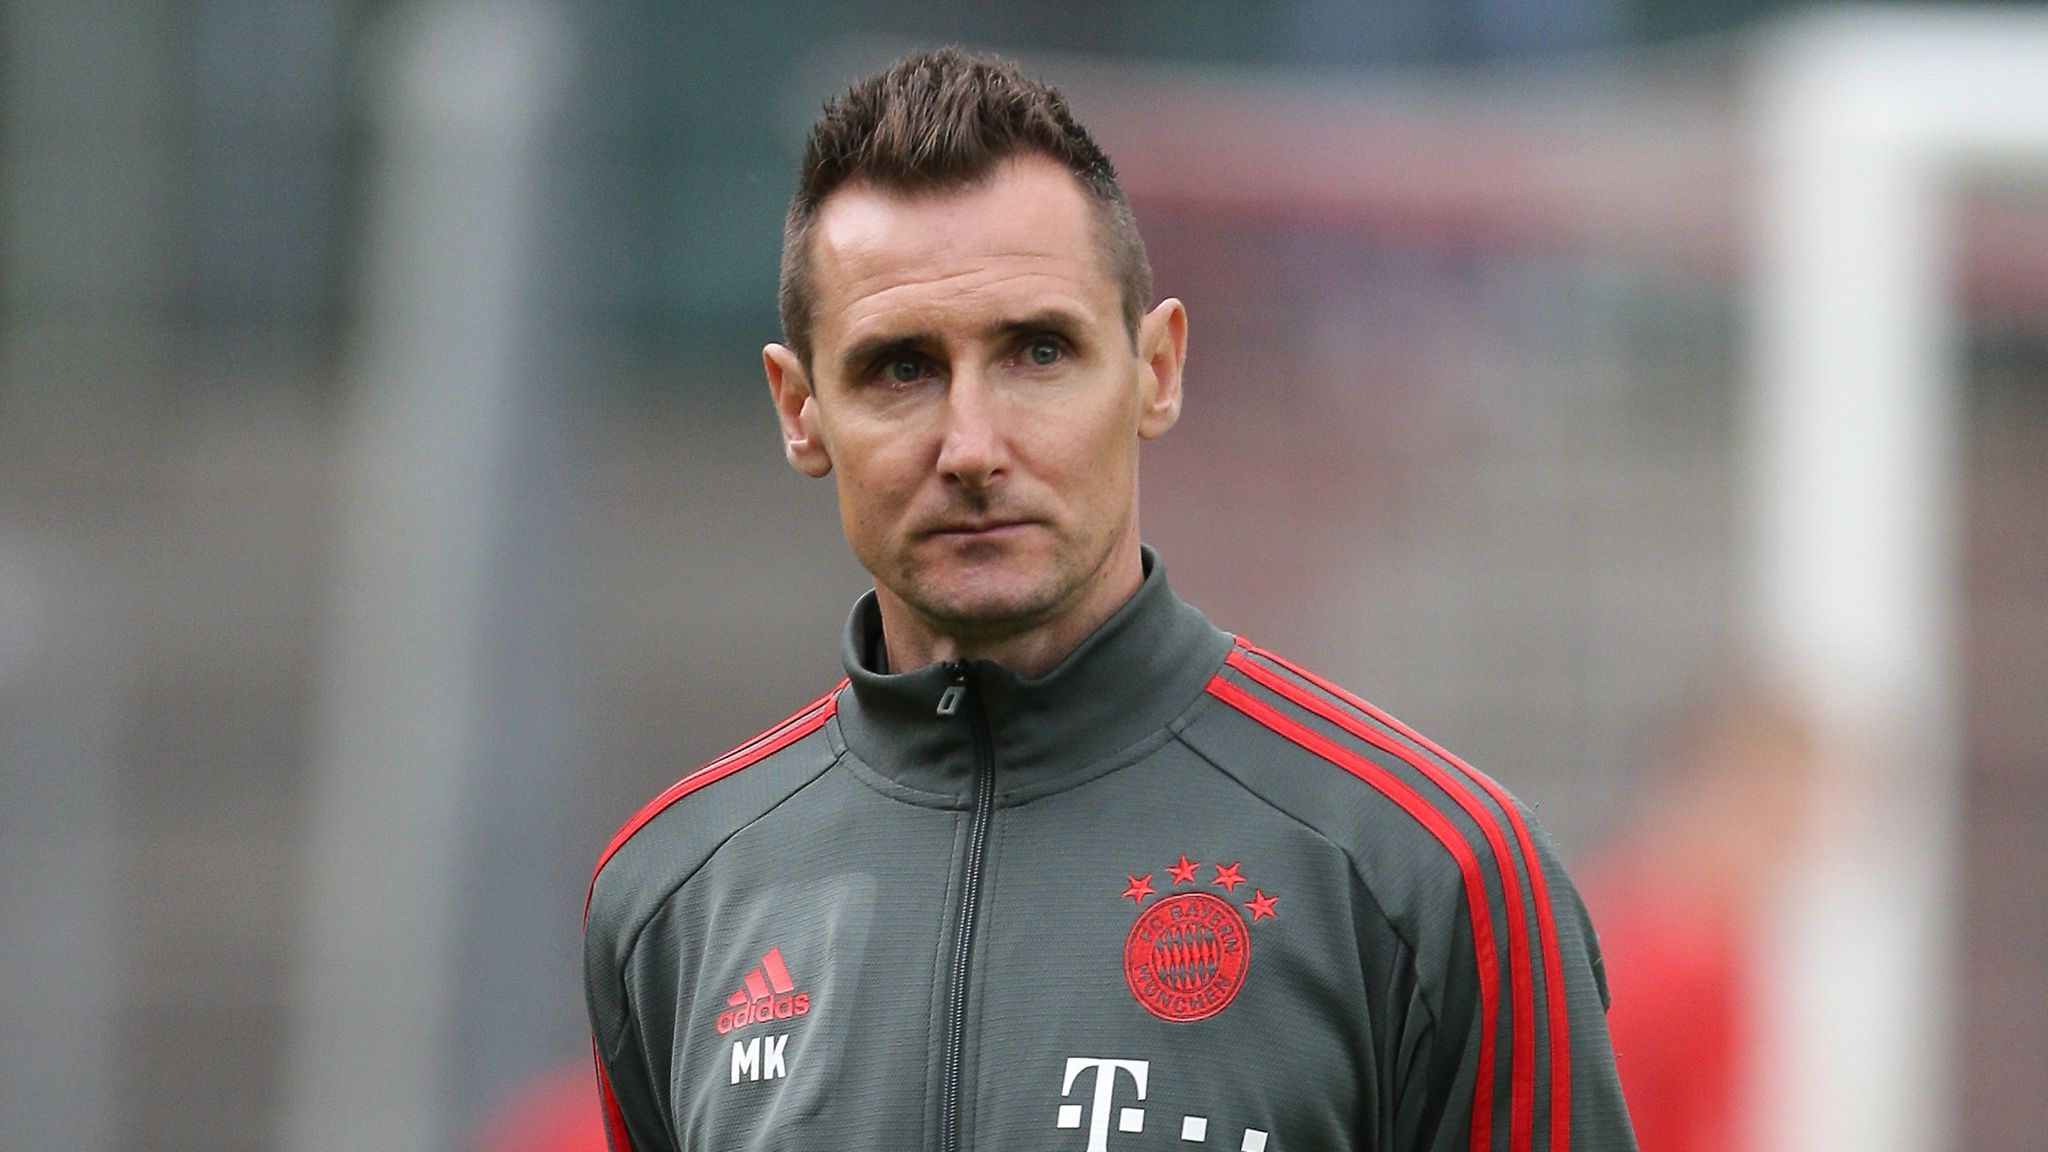 Feature: Klose's secret tutoring for Bayern's top scorers